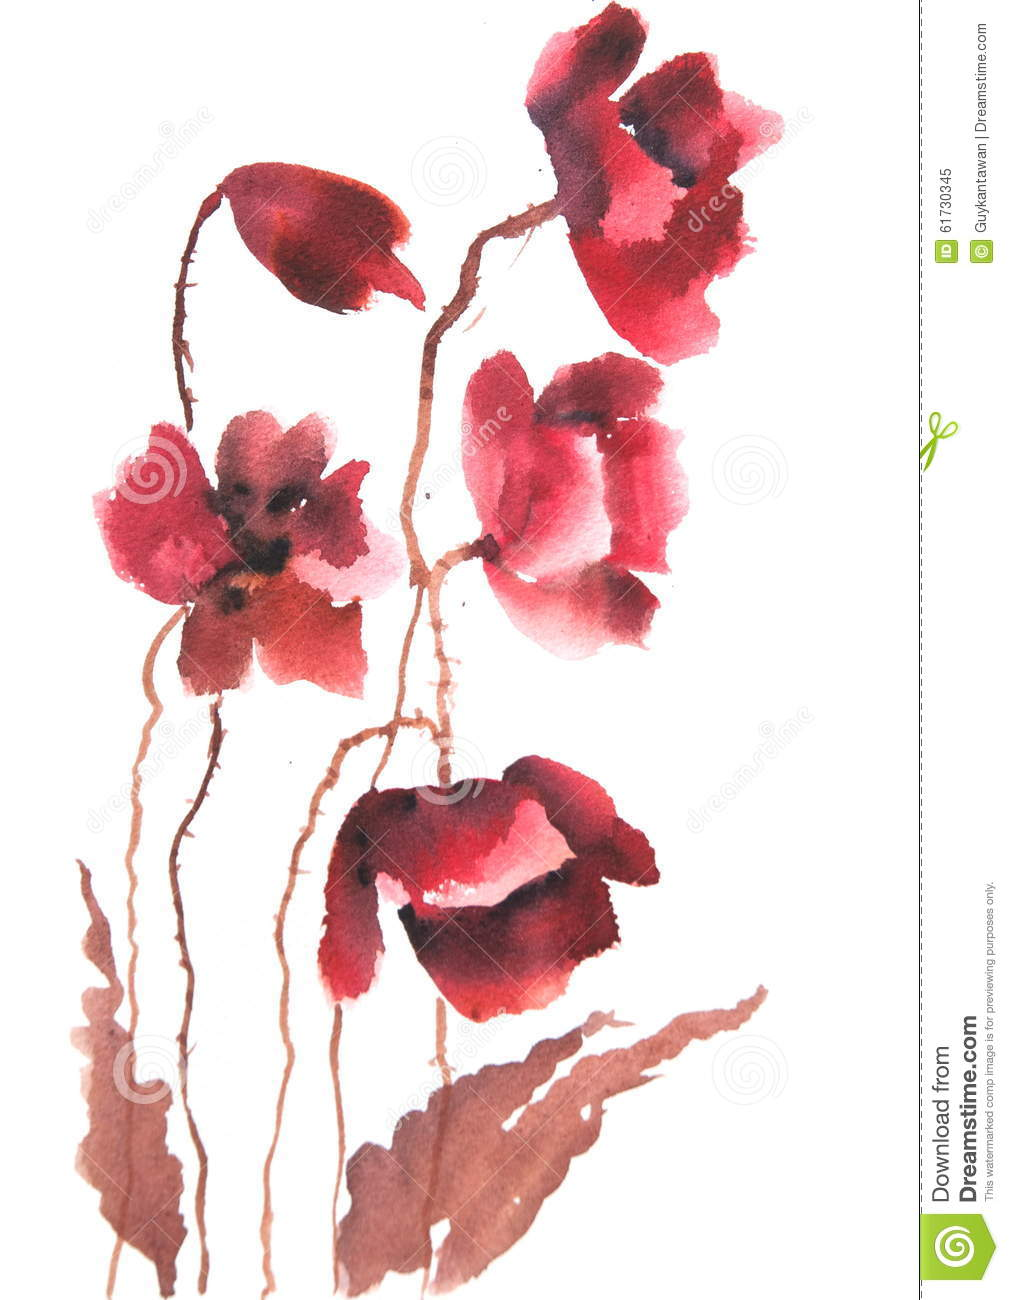 Modern Art Of Red Poppy Flowers Watercolor Painting